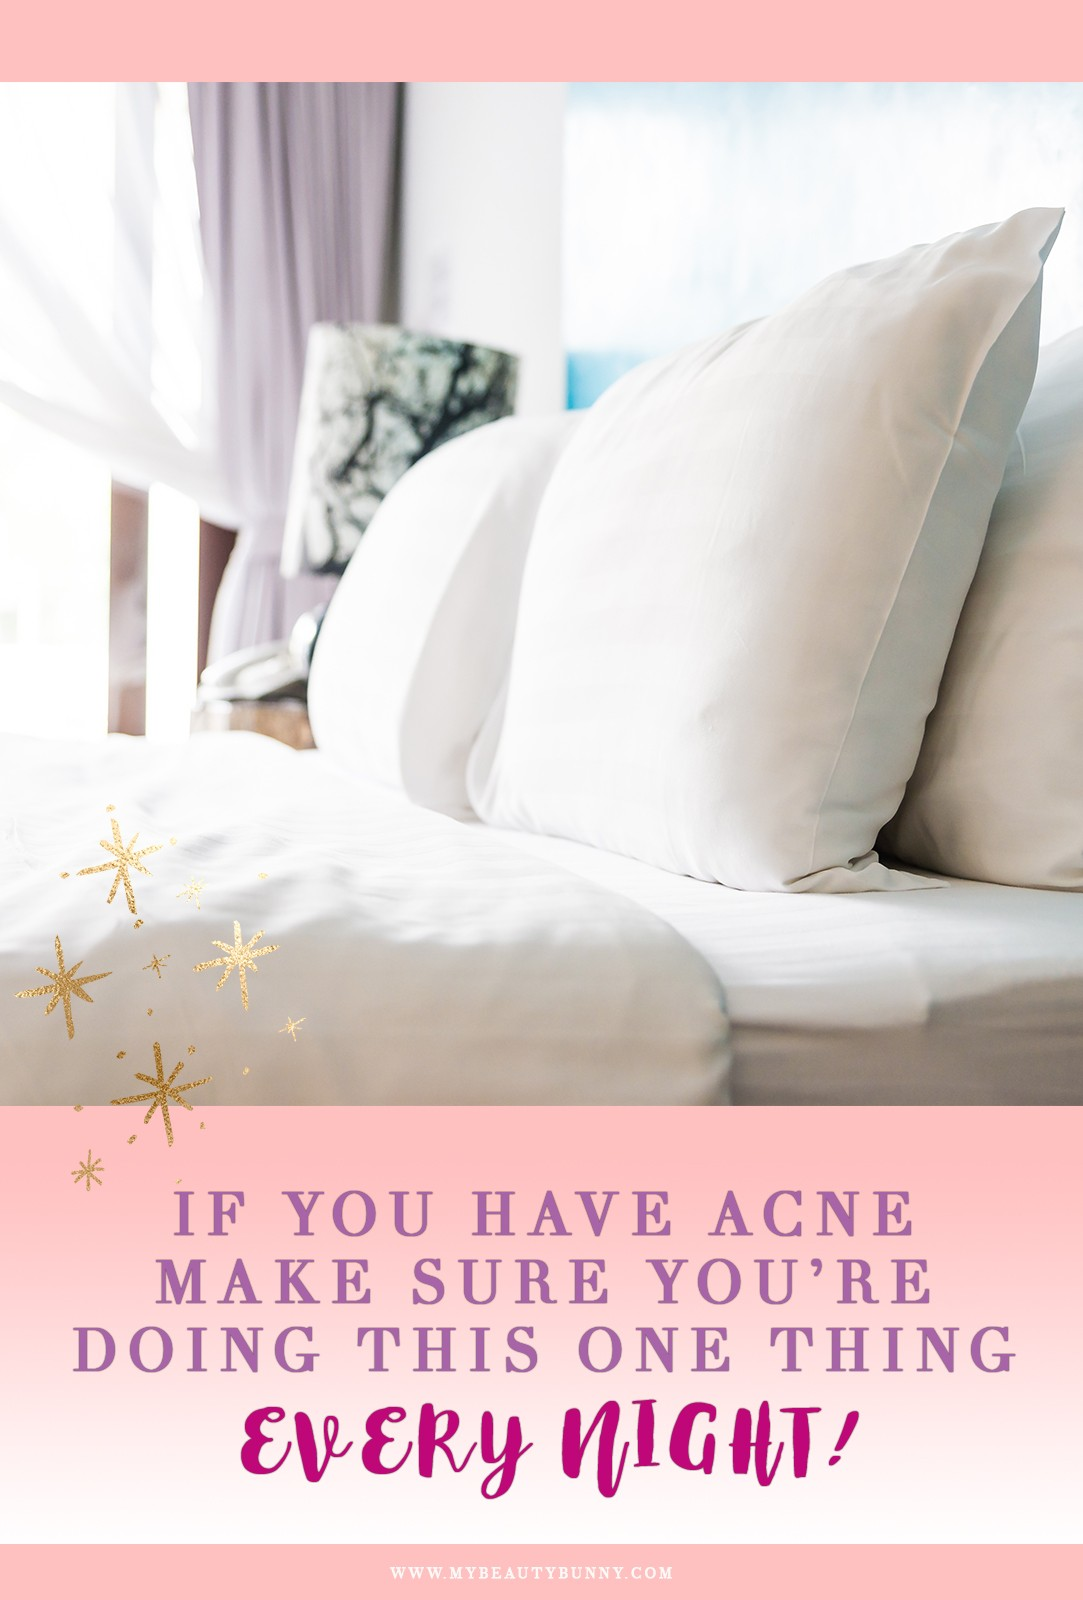 If you have acne make sure you do this one thing every night